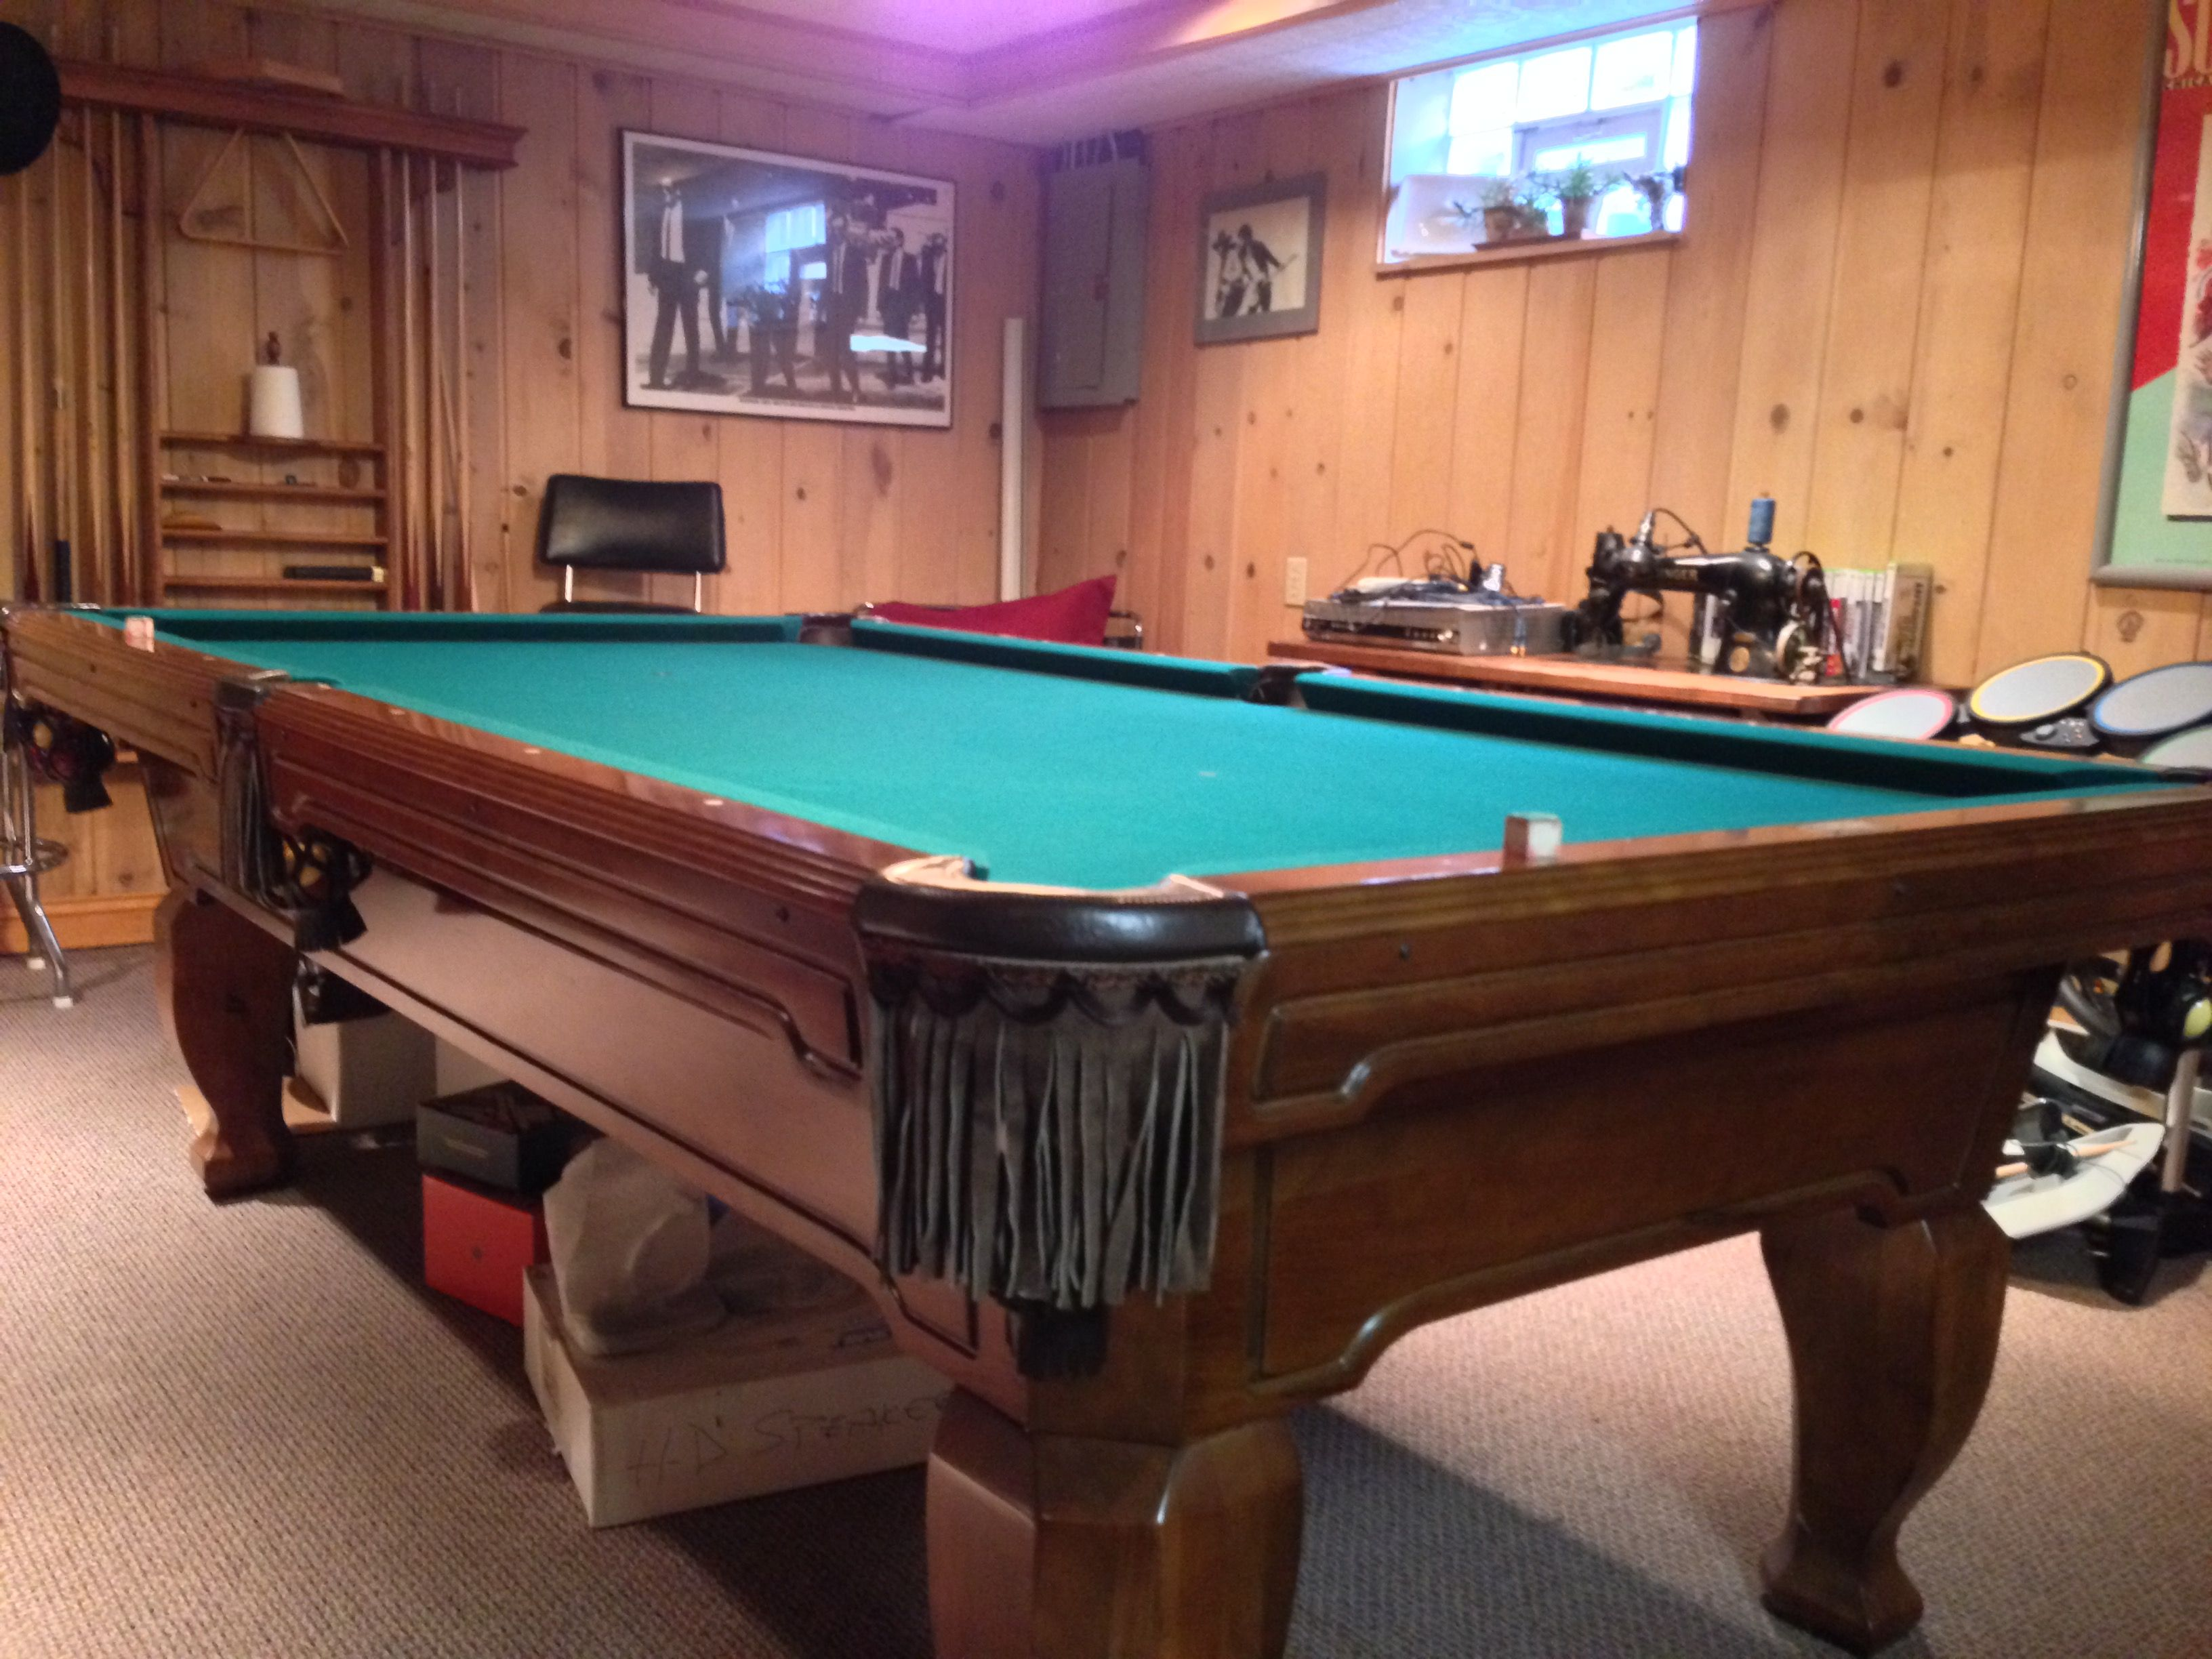 Brunswick Billiards Pool Table Installed New Cloth Complete